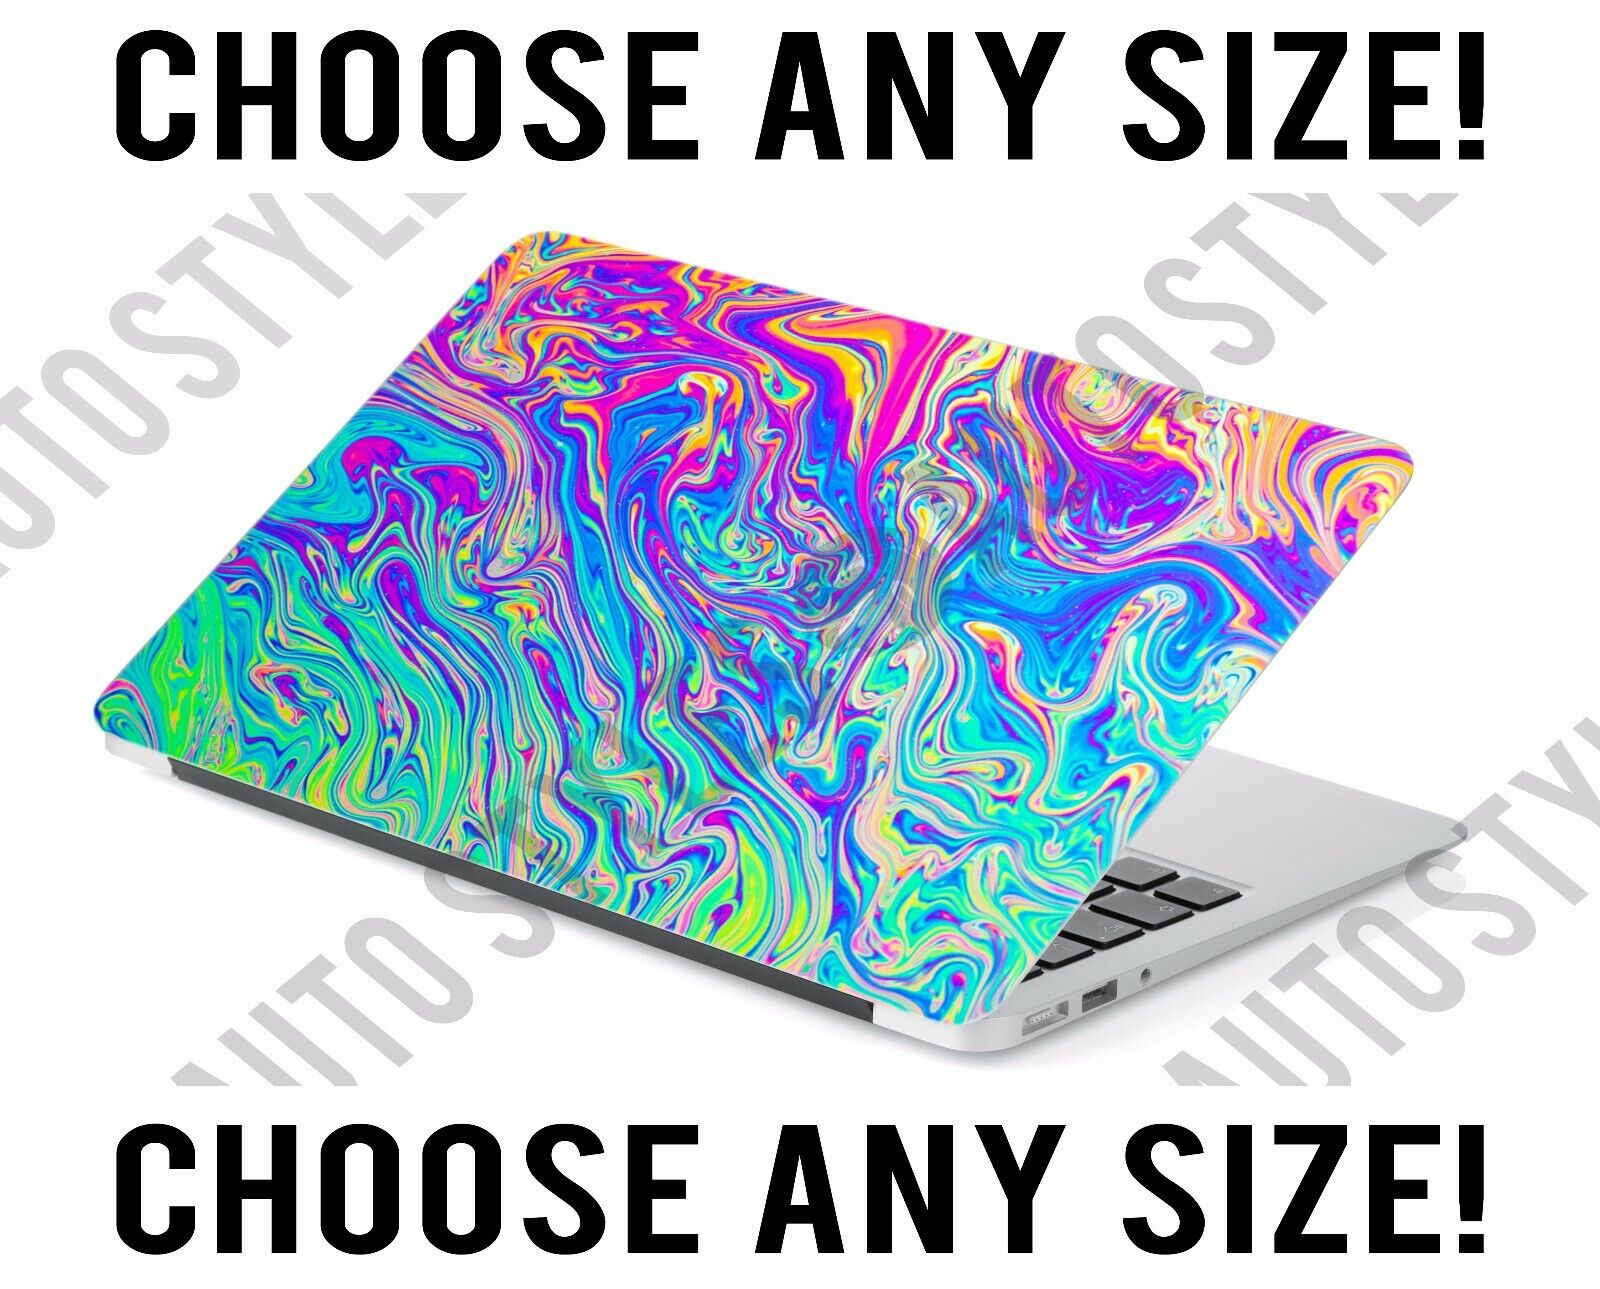 Psychedelic Rainbow Slime Laptop Skin Decal Sticker Tablet S